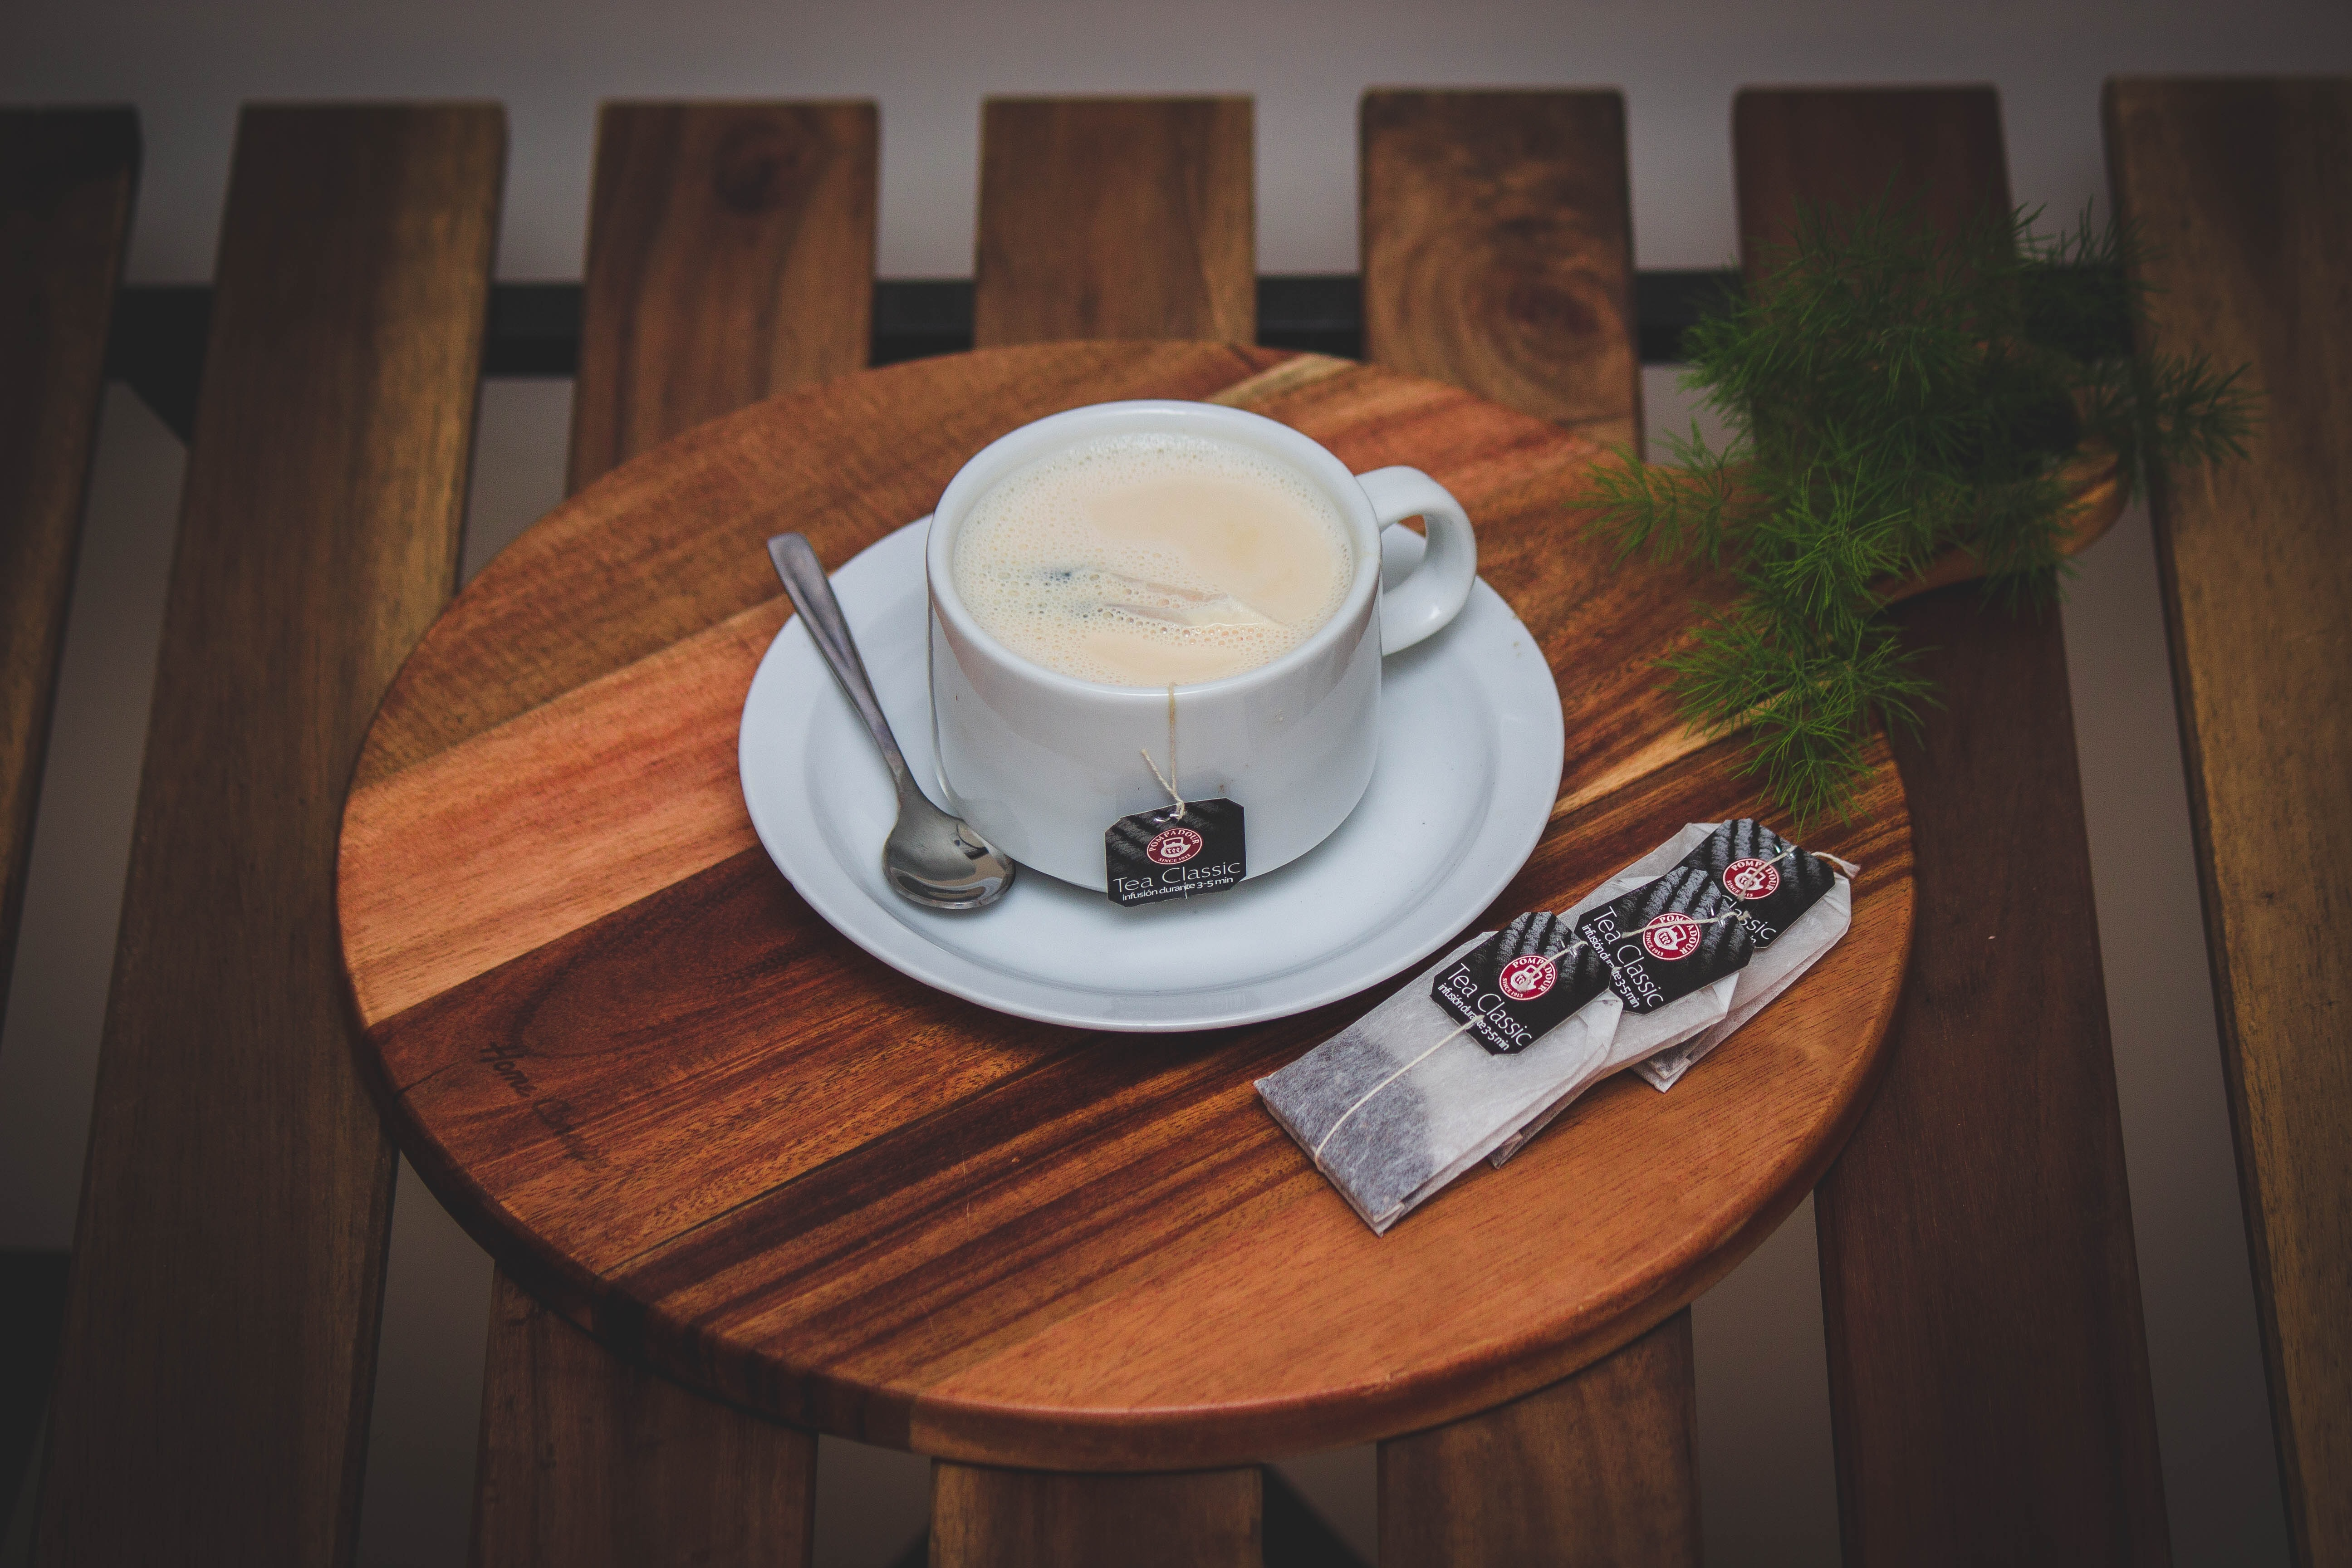 white teacup on top of white saucer on brown wooden tray